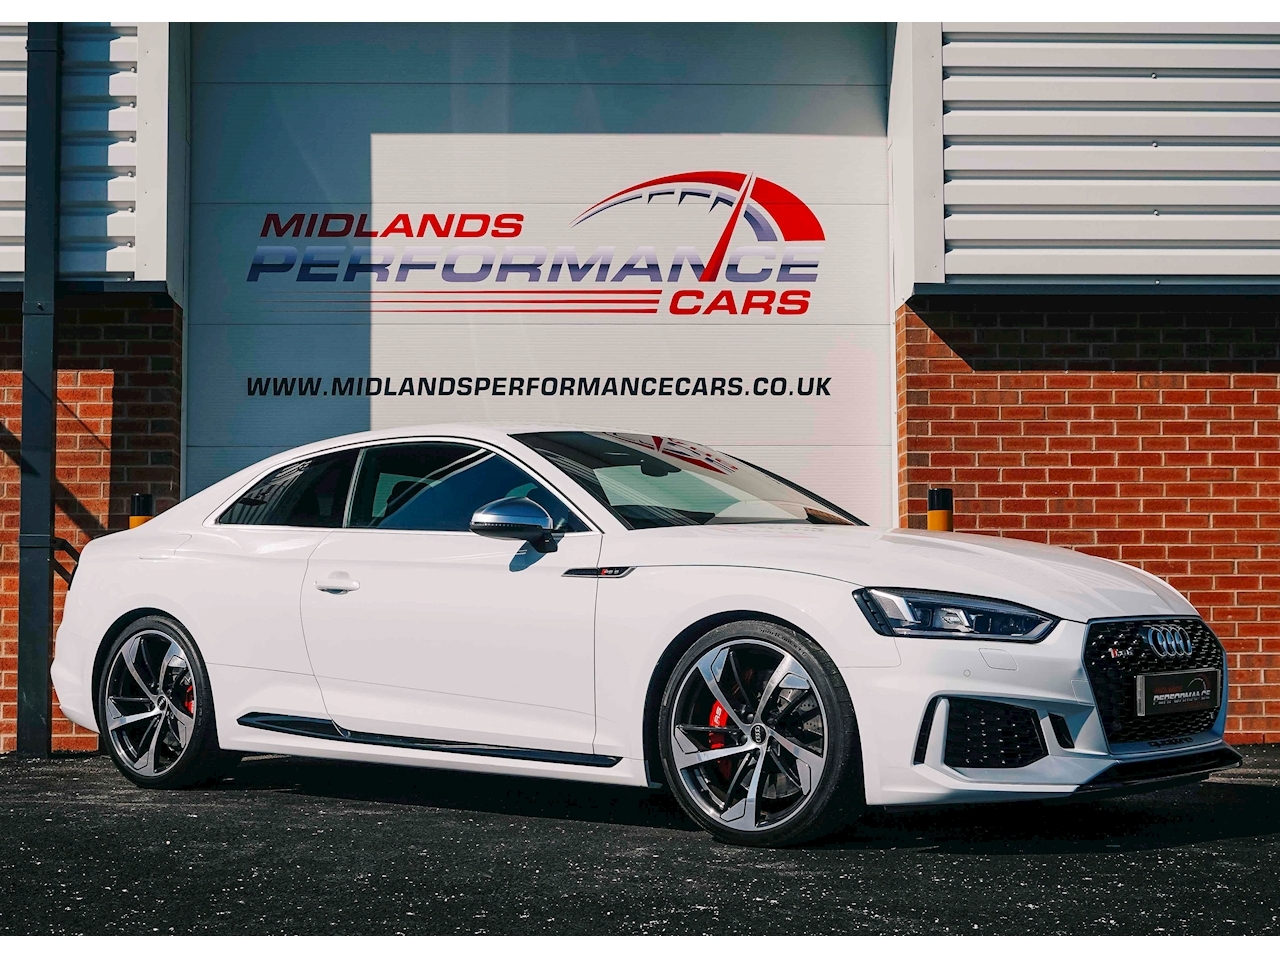 RS5 2.9 TFSI V6 Coupe 2dr Petrol Tiptronic quattro (s/s) (450 ps) Coupe 2.9 Tiptronic Petrol